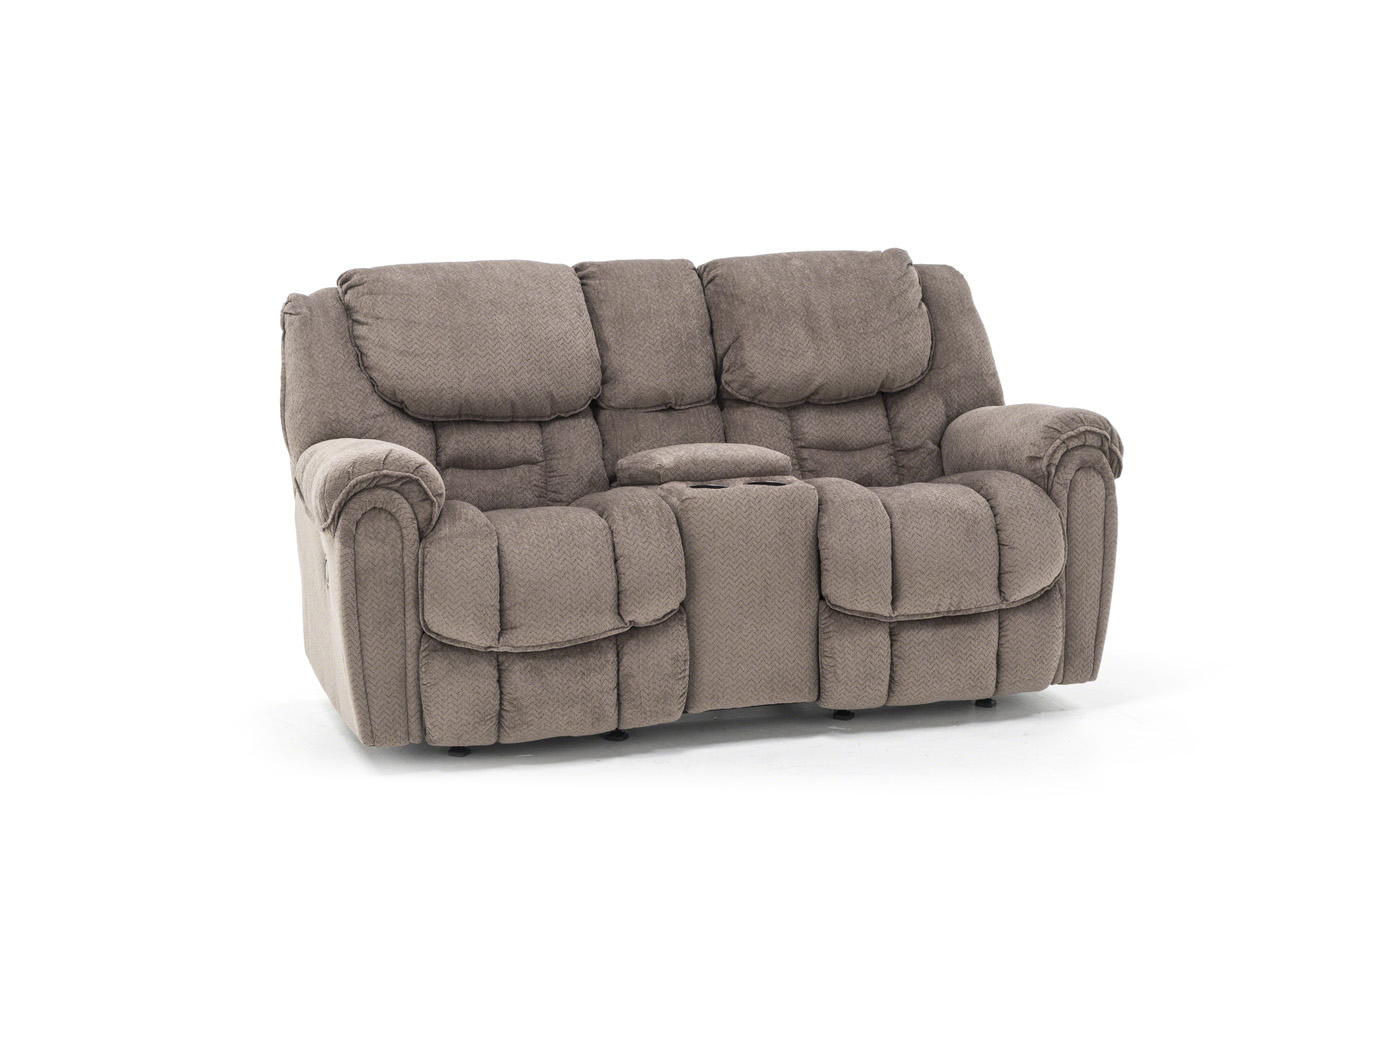 home by bffc product knight club loveseat free fabric christopher today garden shipping overstock rocker chair recliner glider hawthorne